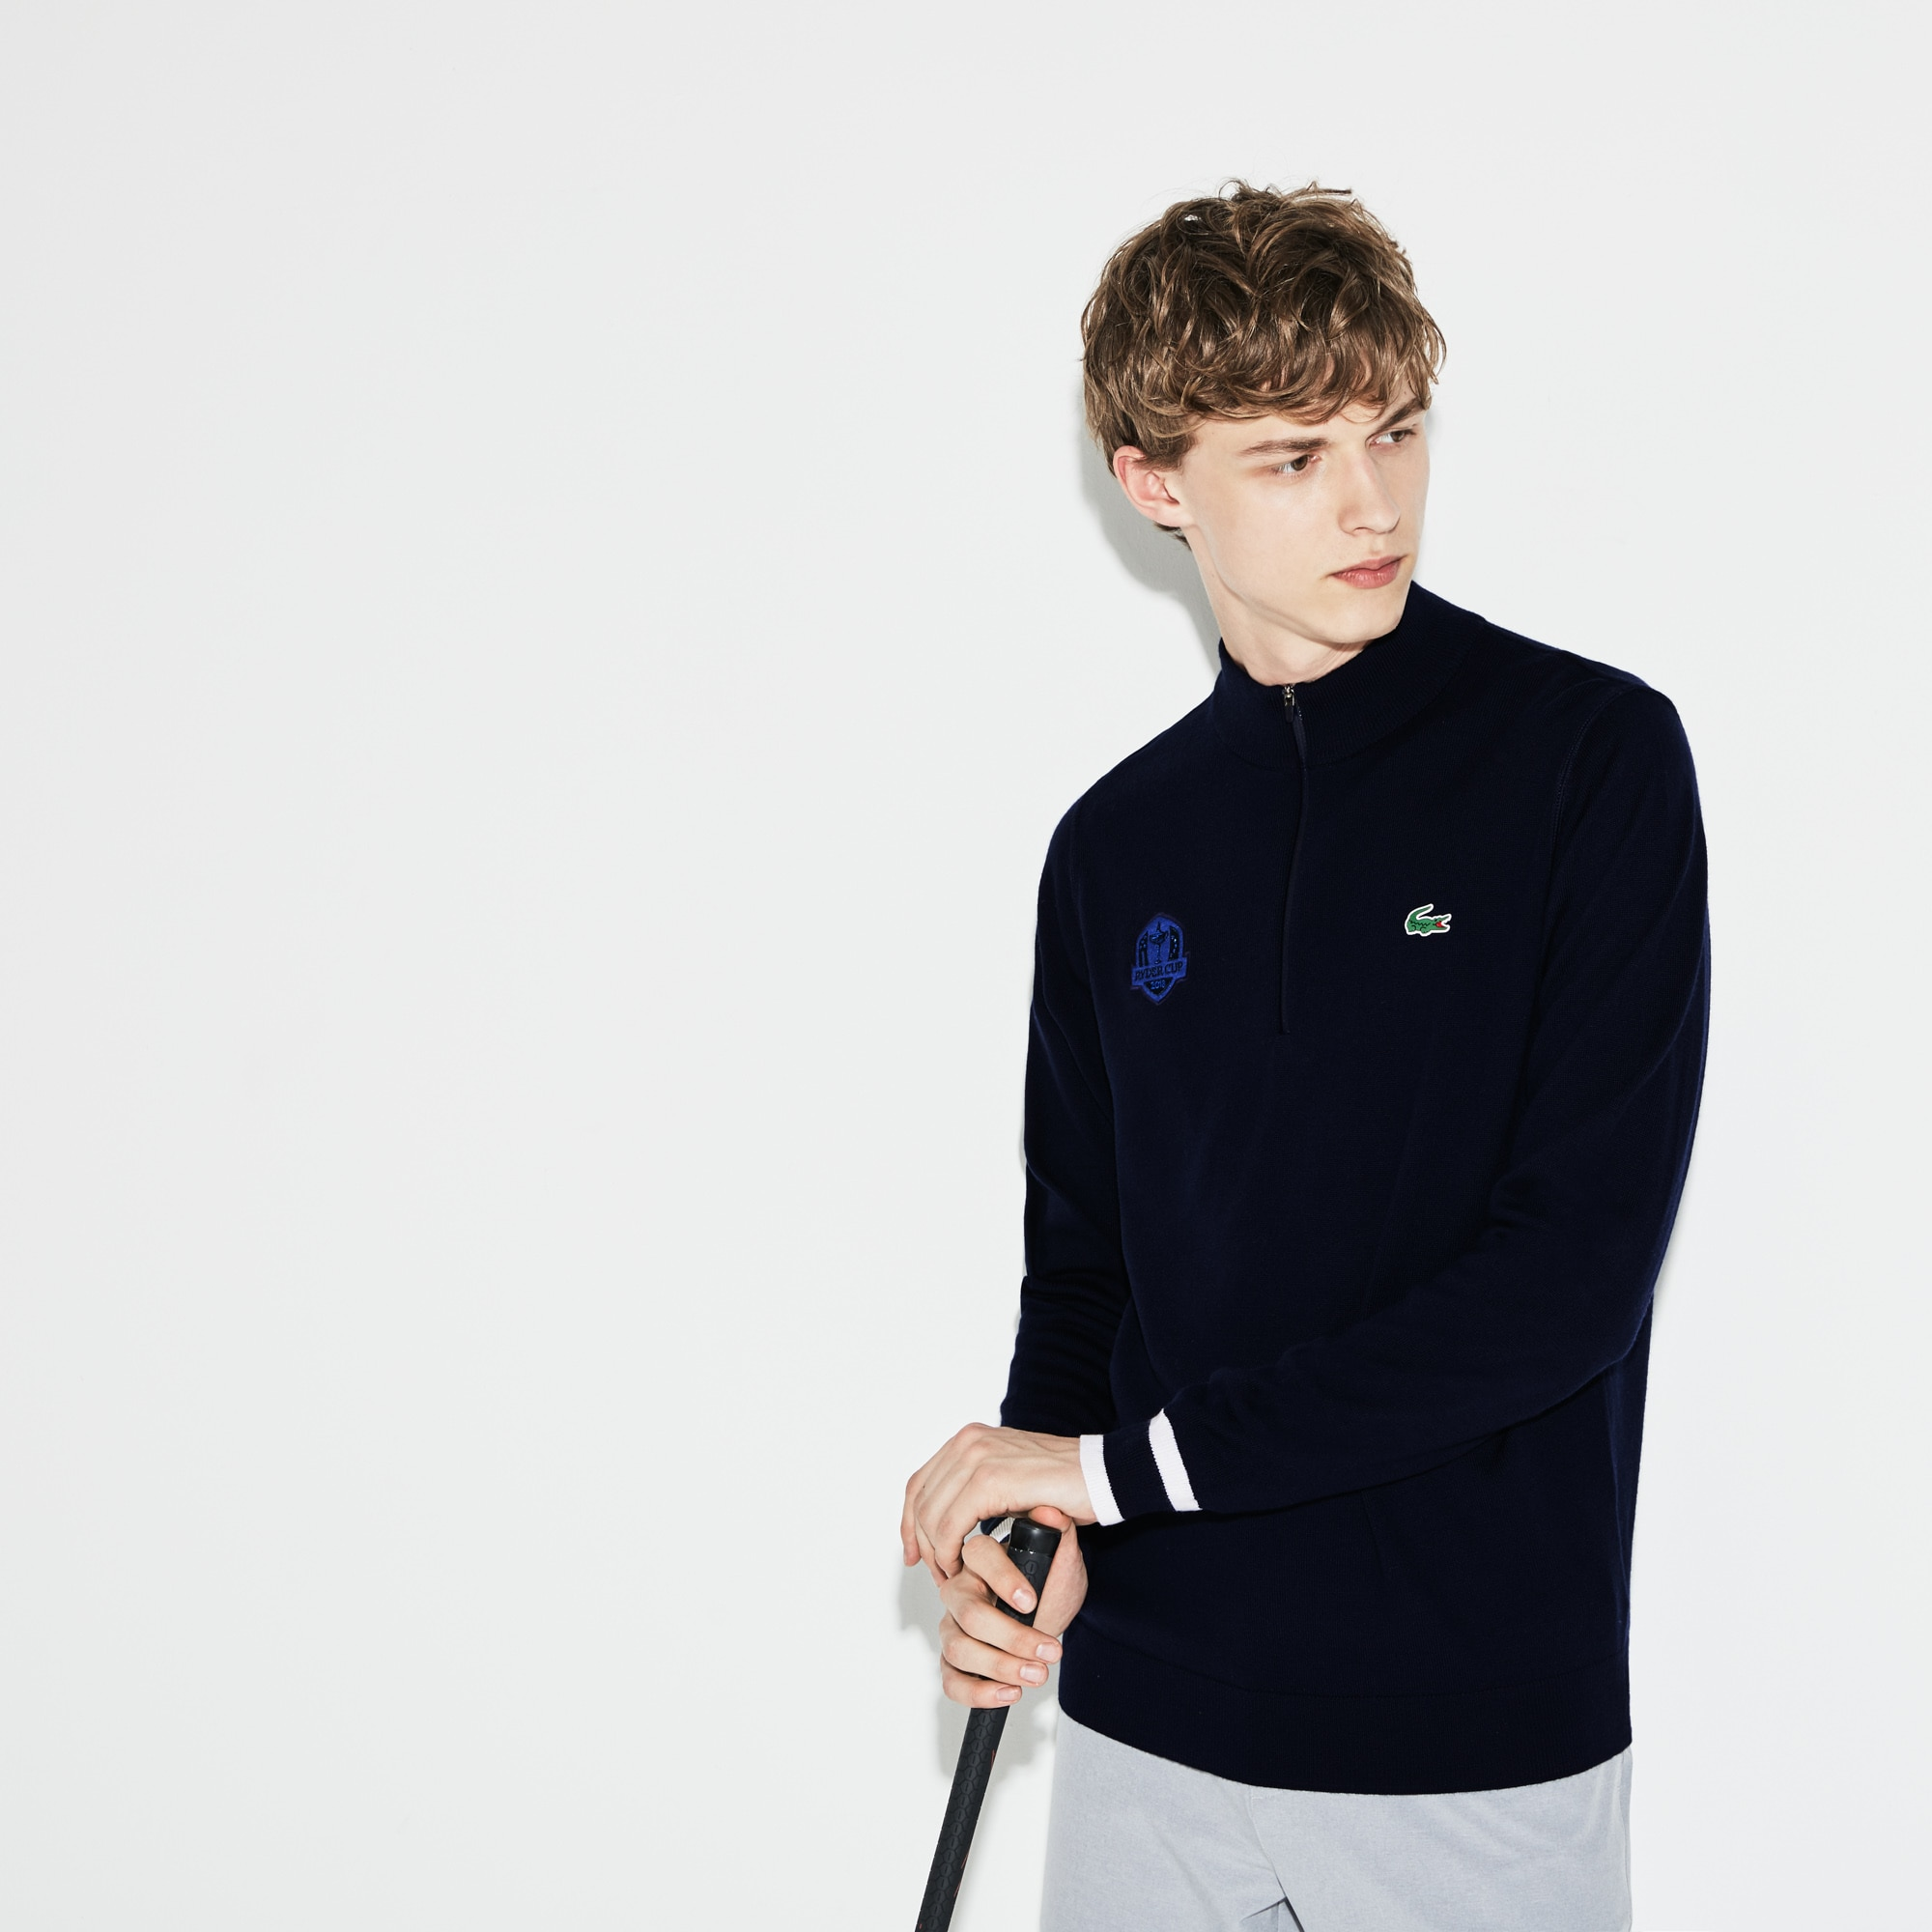 Jersey Golf Lacoste SPORT Édition Ryder Cup sweatshirt met rits